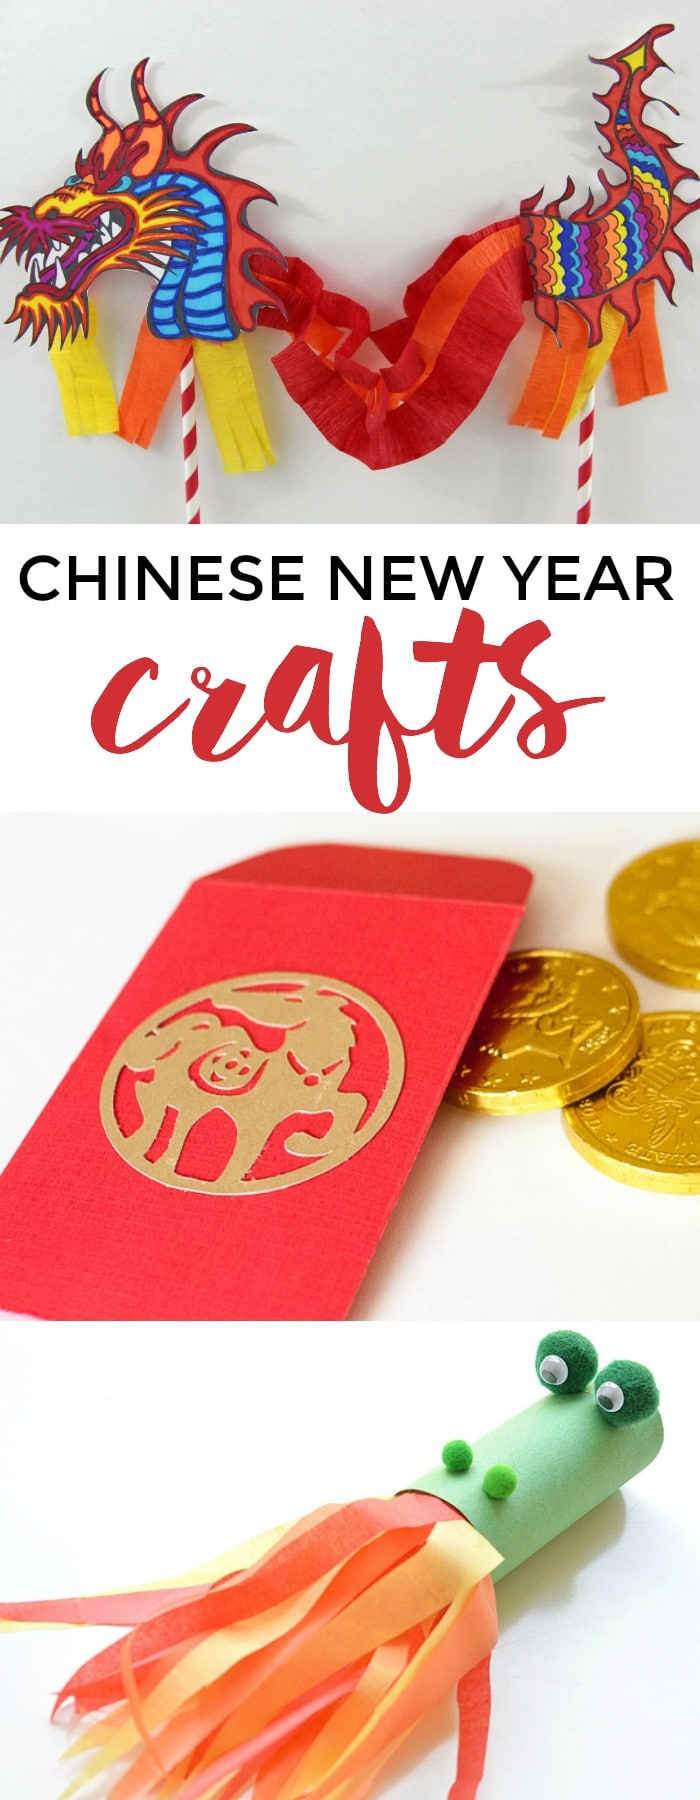 To kick off your Chinese New Year celebrations, here are 10 creative Chinese New Year crafts for kids.